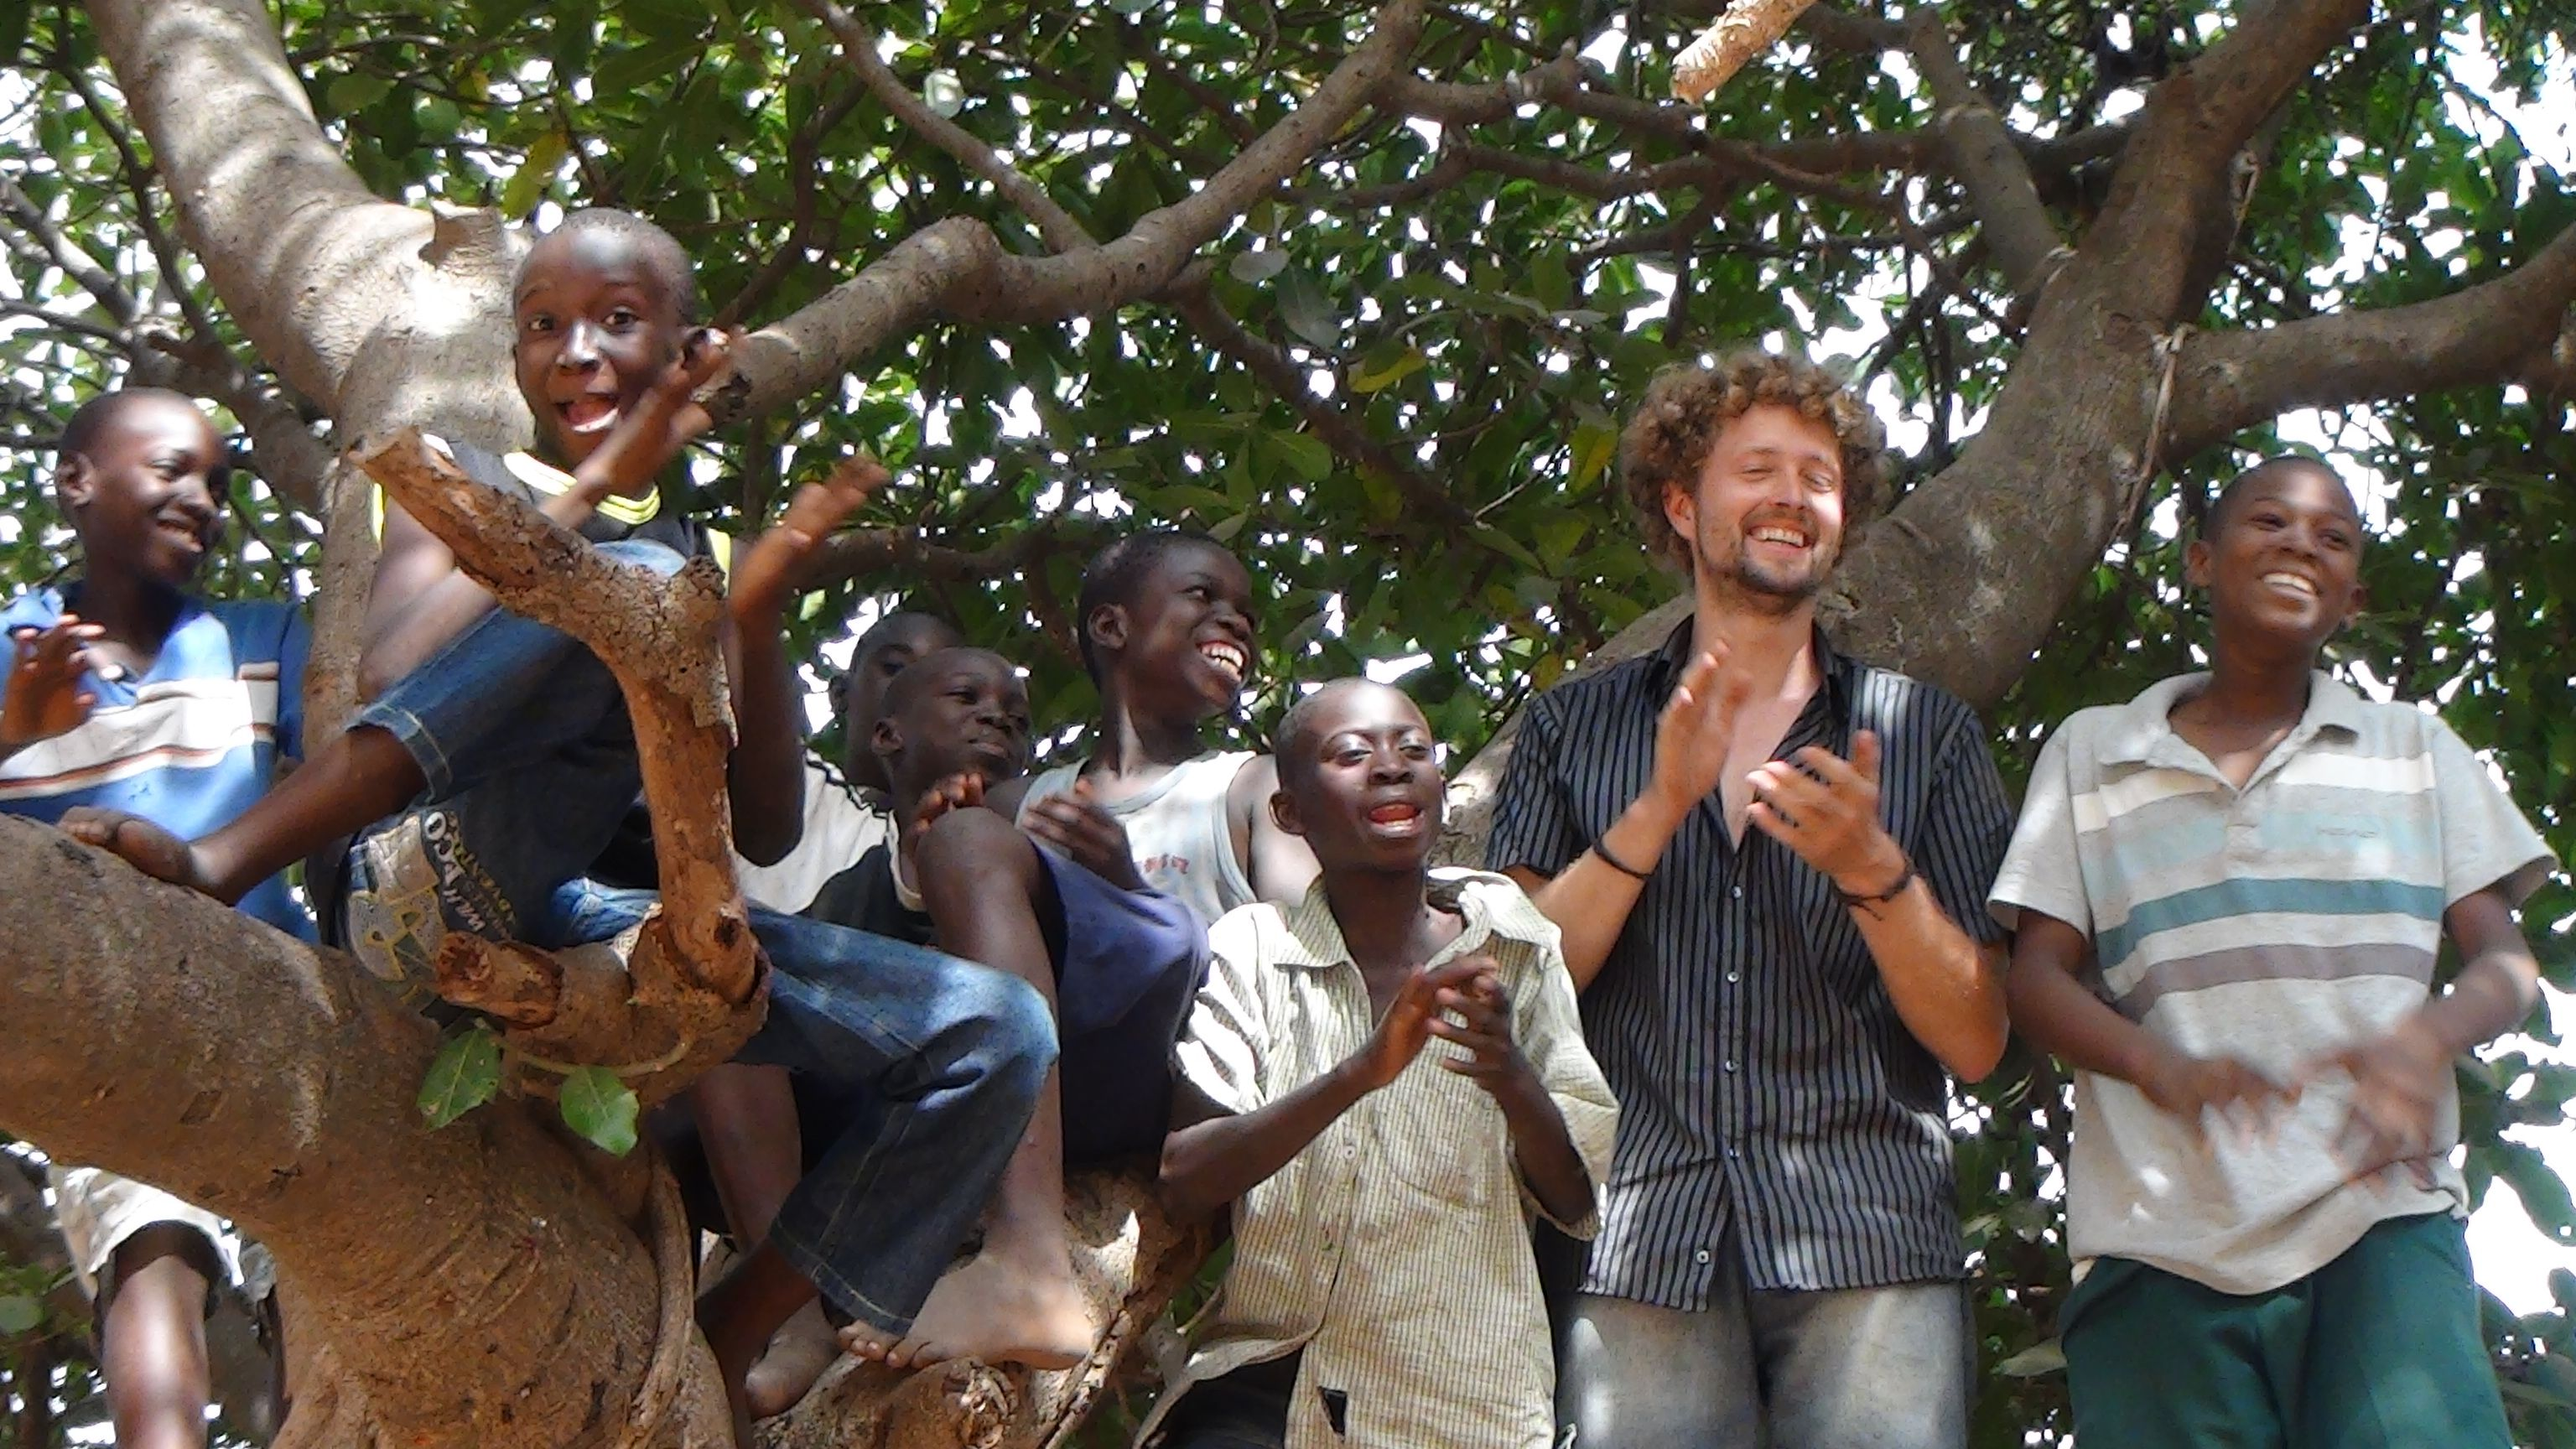 Fabian Dietrich On A Fundraising Tour In Afrika Fabandviviencom